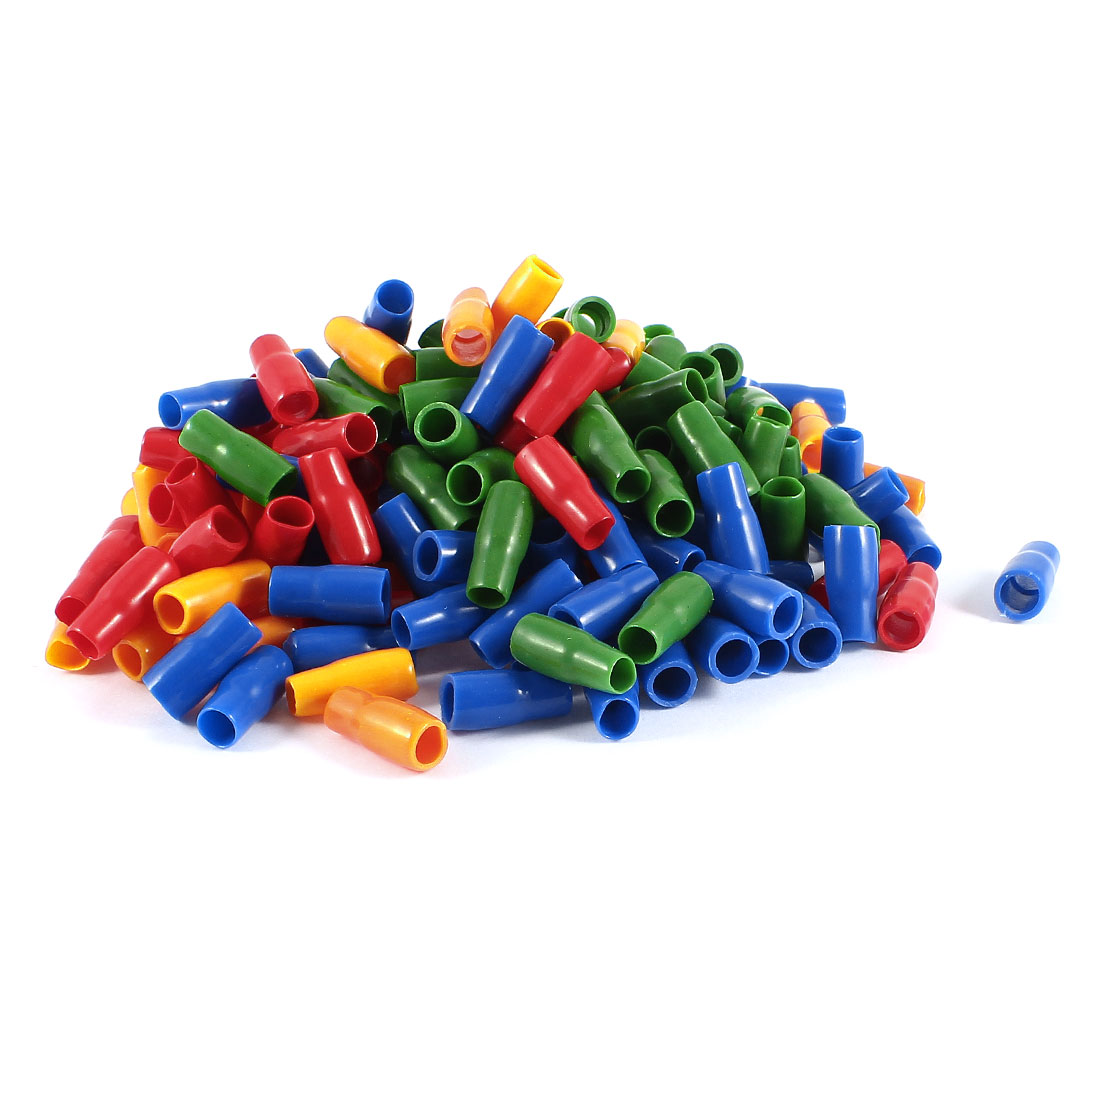 200 Pcs Soft PVC Wire V-8 10mm2 Crimp Terminal End Insulated Sleeves Cover Green Red Blue Orange